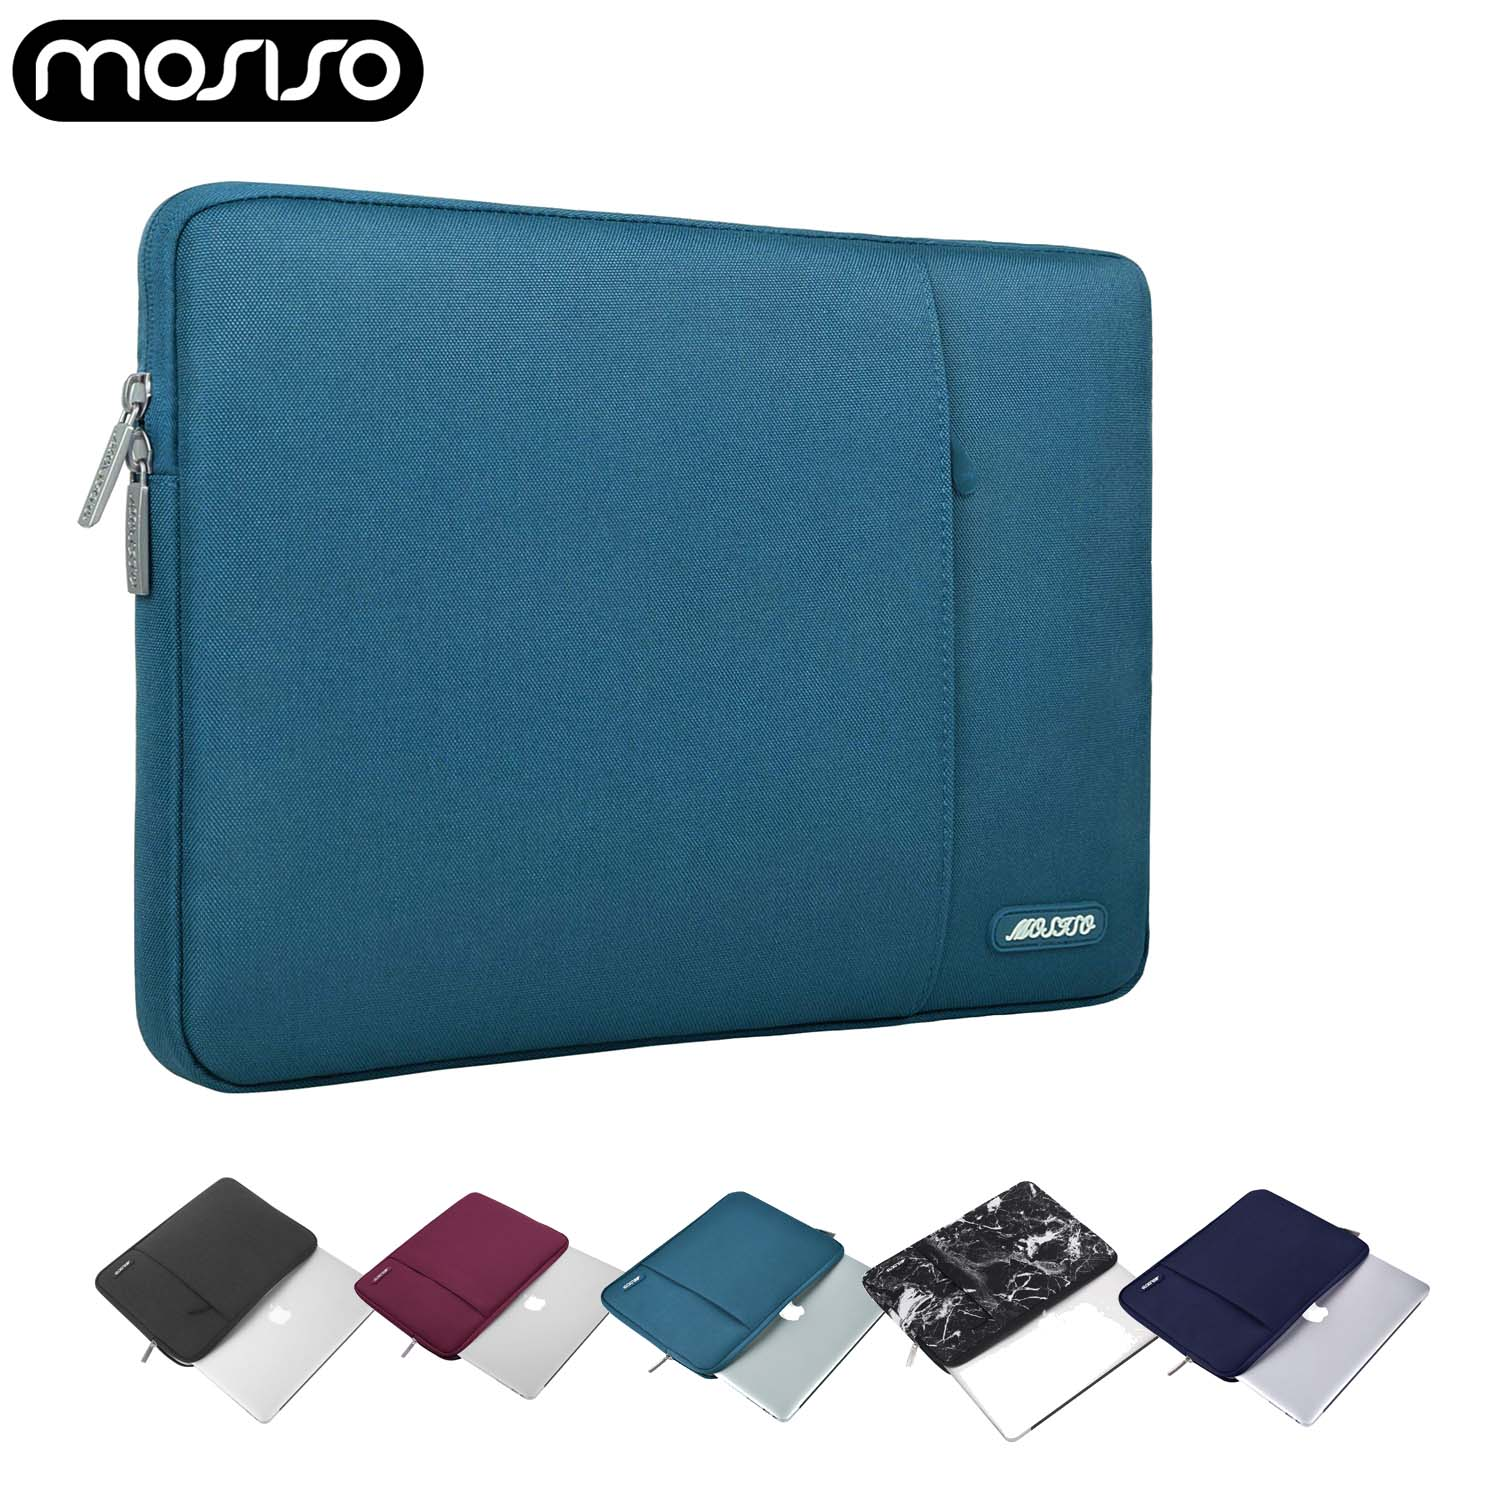 MOSISO 2019 <font><b>Laptop</b></font> Sleeve <font><b>Case</b></font> Bag 10.5 11,12,13,14,15